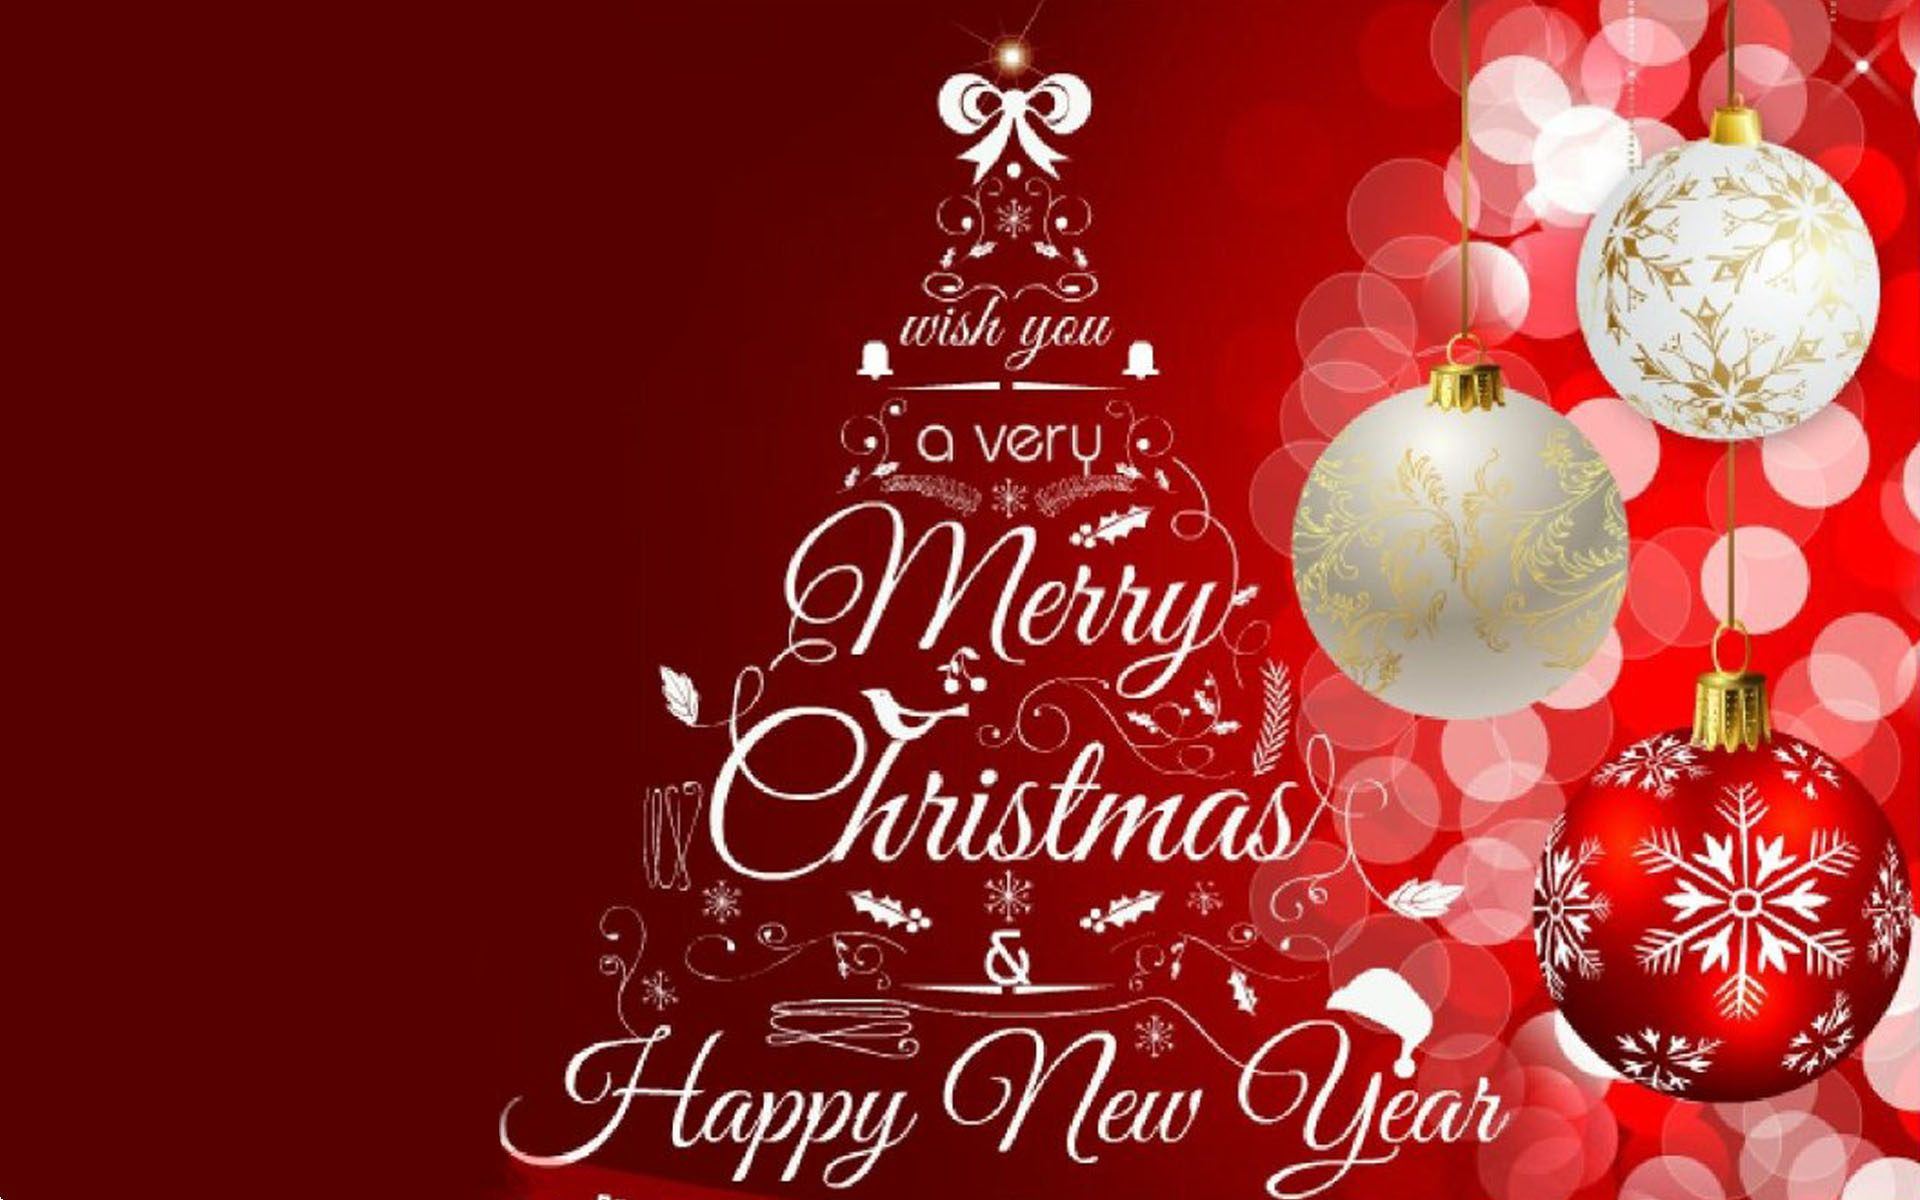 Christmas And New Year Wishes 2021 Merry Christmas Happy New Year 2021 Wallpapers Wallpaper Cave